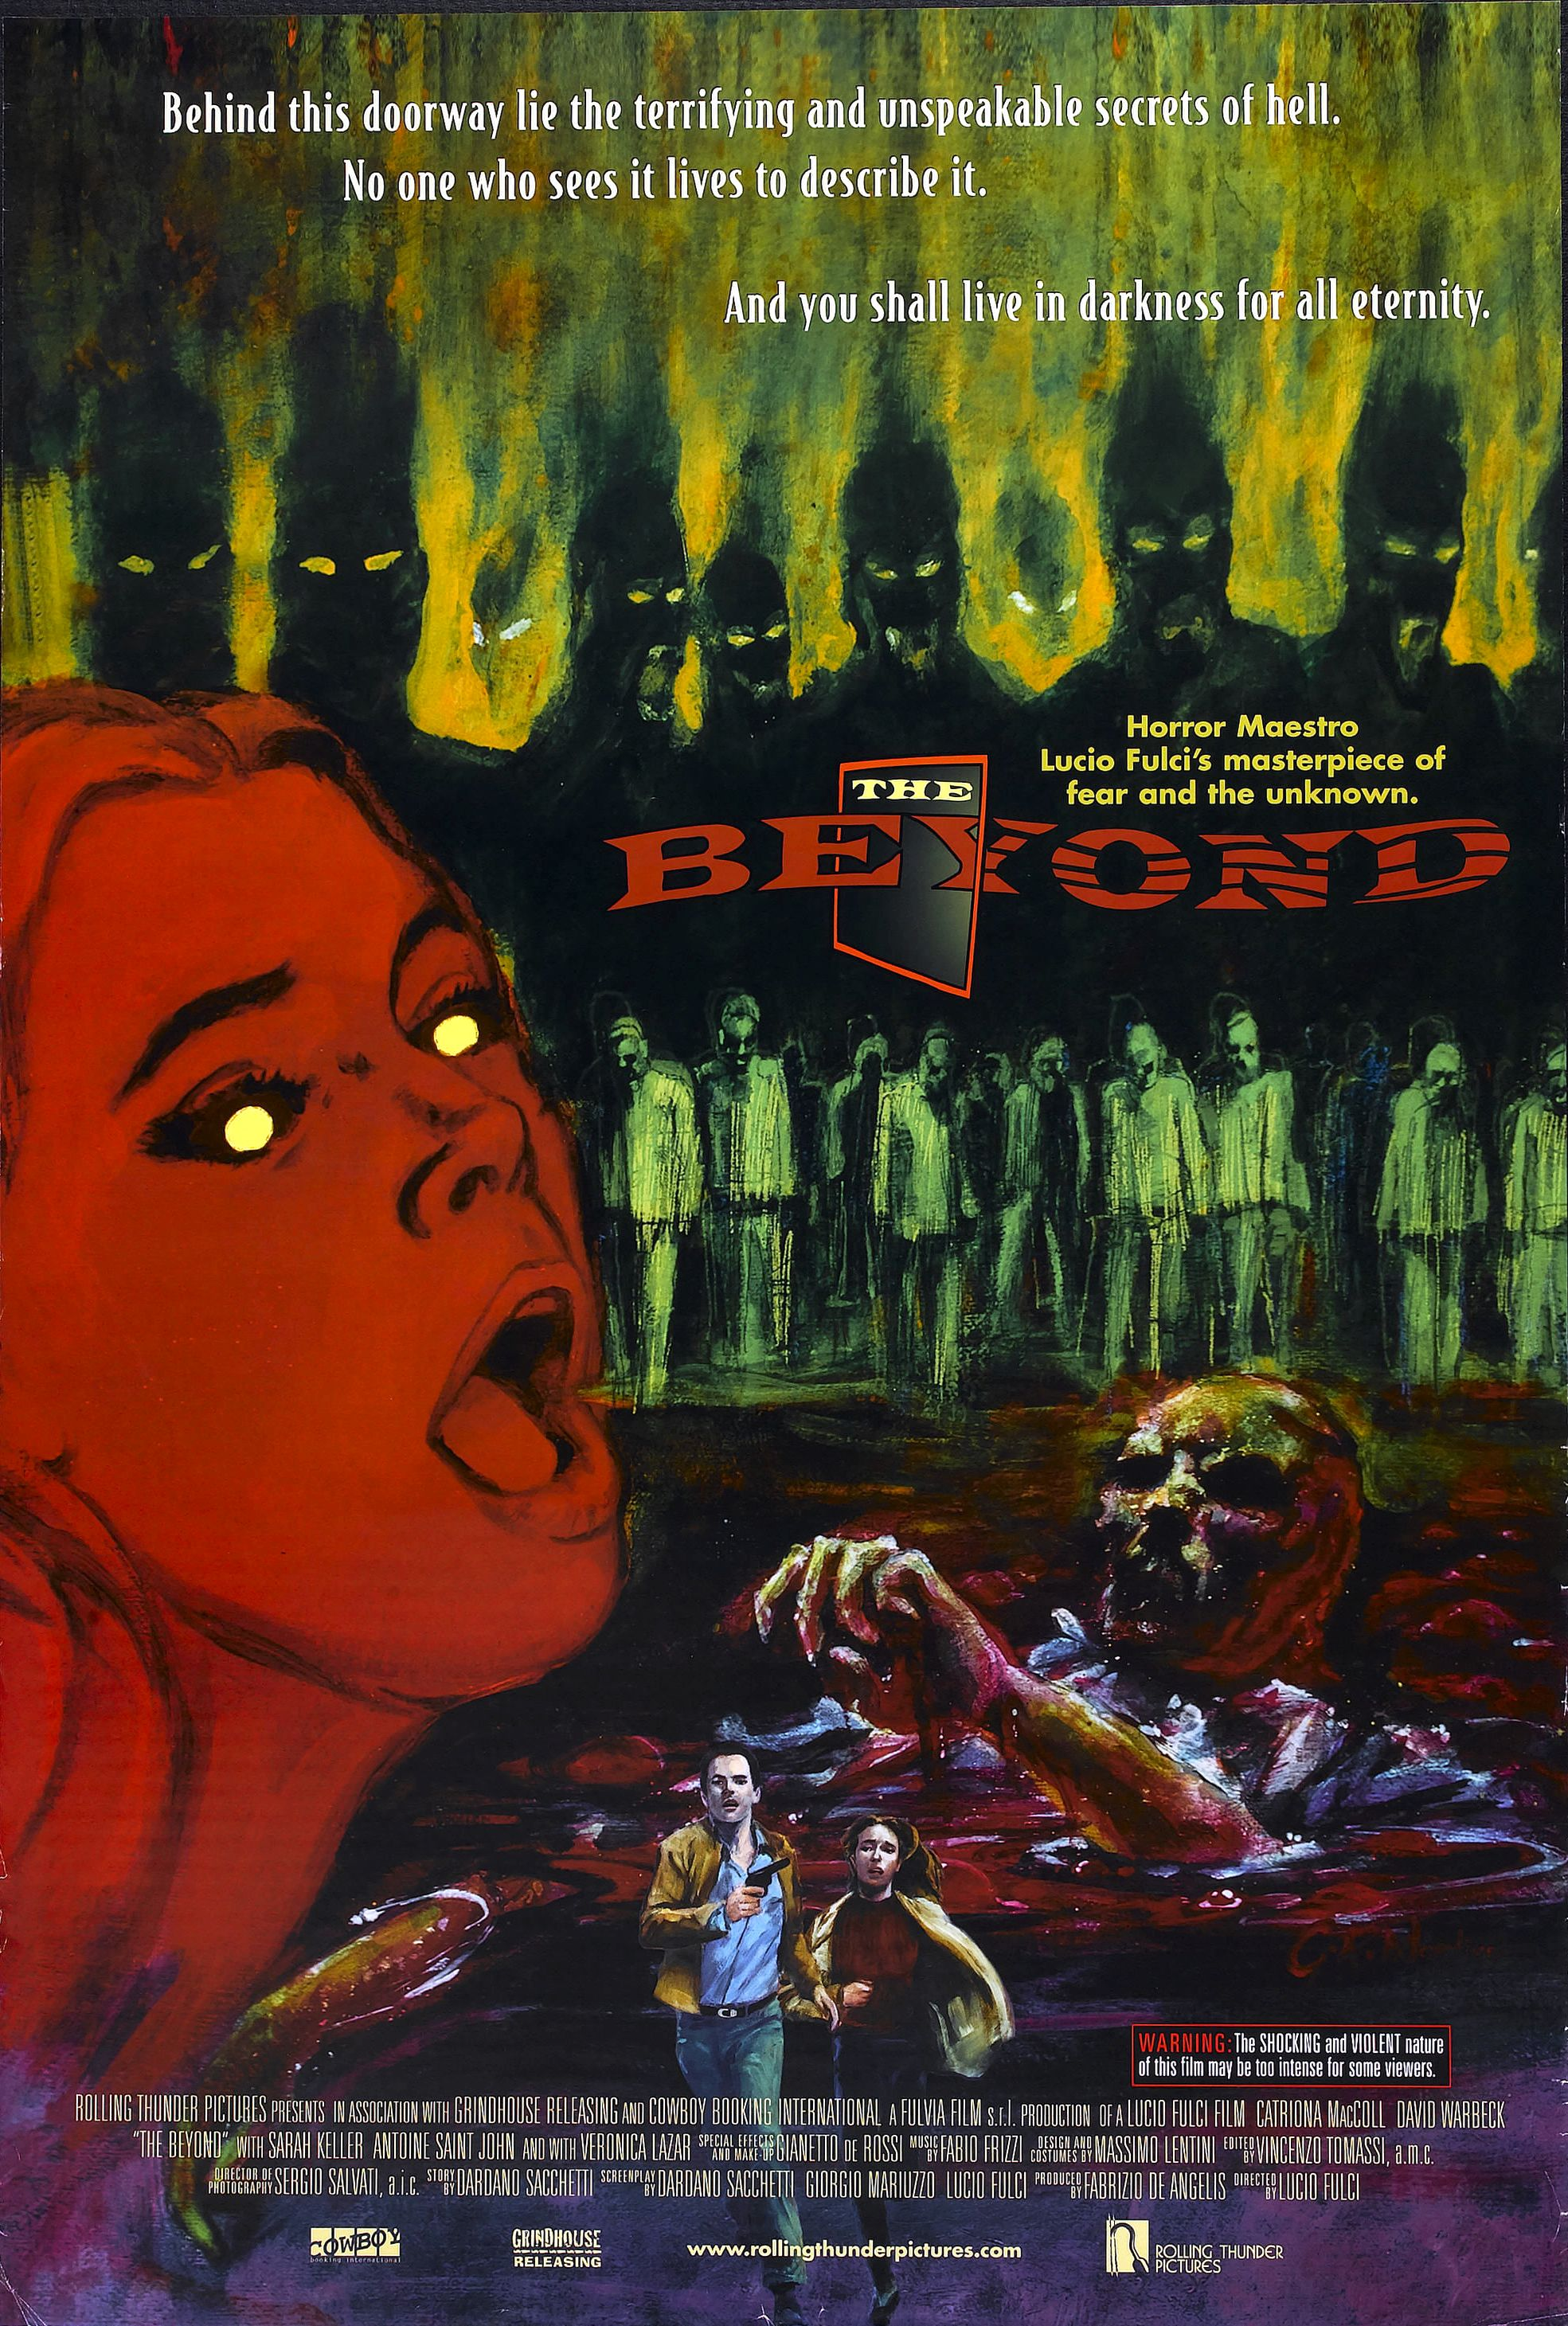 Movie Poster for &quotThe Beyond""